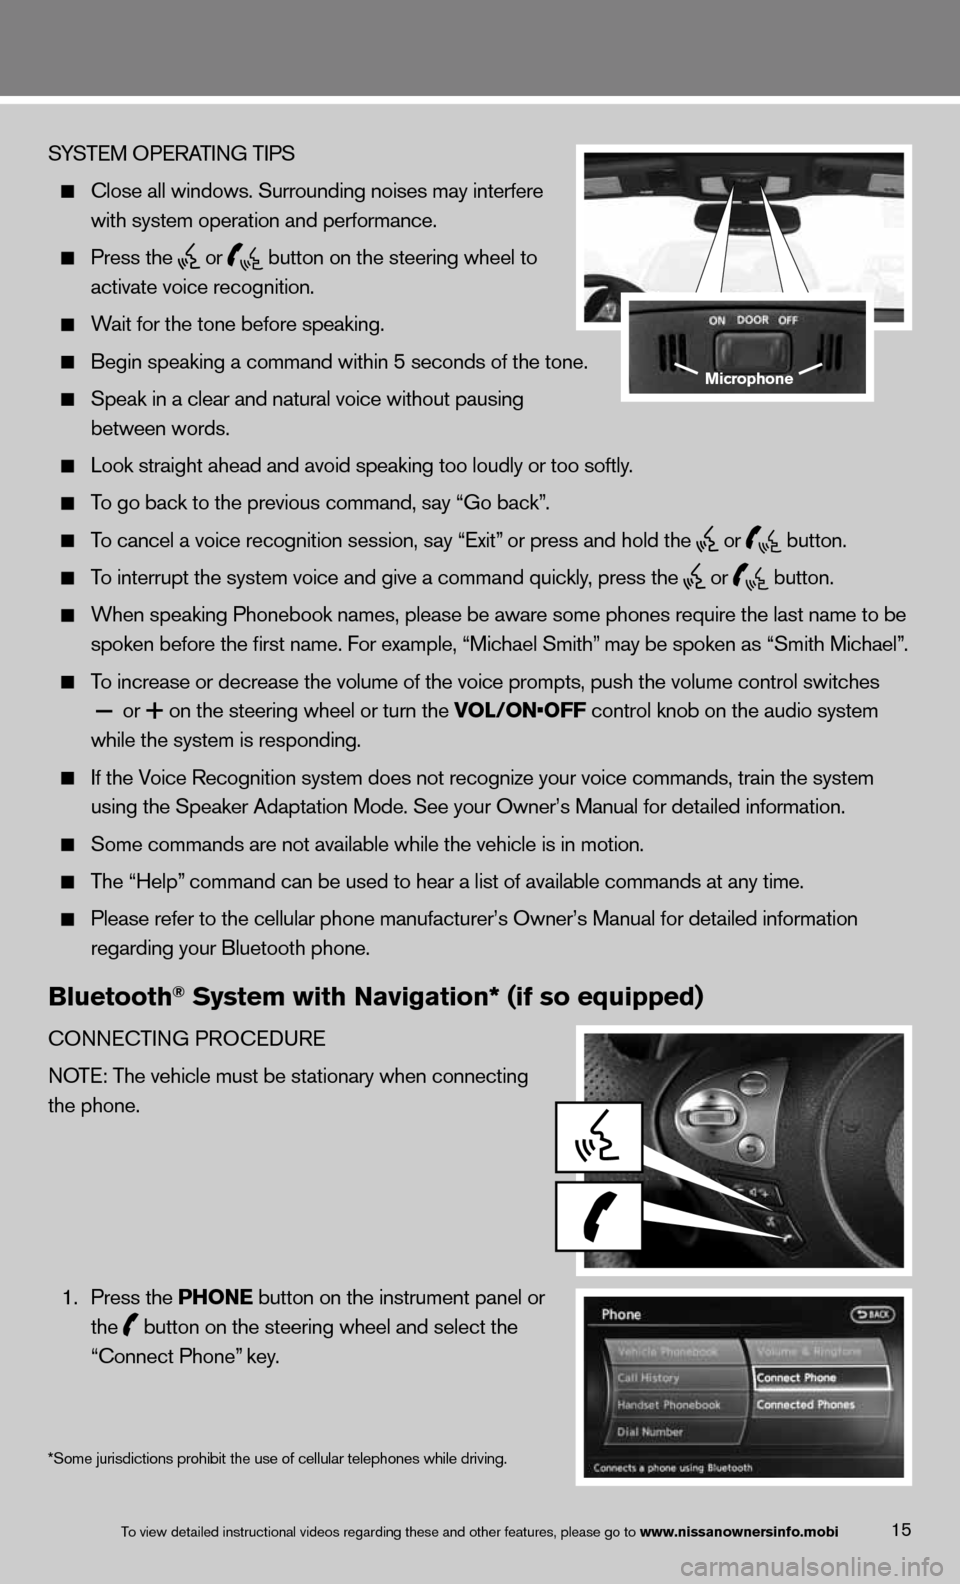 NISSAN 370Z ROADSTER 2013 Z34 Quick Reference Guide 15 SYS\bEM OPERA\bING \bIPS    Close all windows.\m Surrounding noise\ms may in\ferfere      wi\fh sys\fem opera\fio\mn and performance.     Press \fhe   or   bu\f\fon on \fhe s\feeri\mng wheel \fo